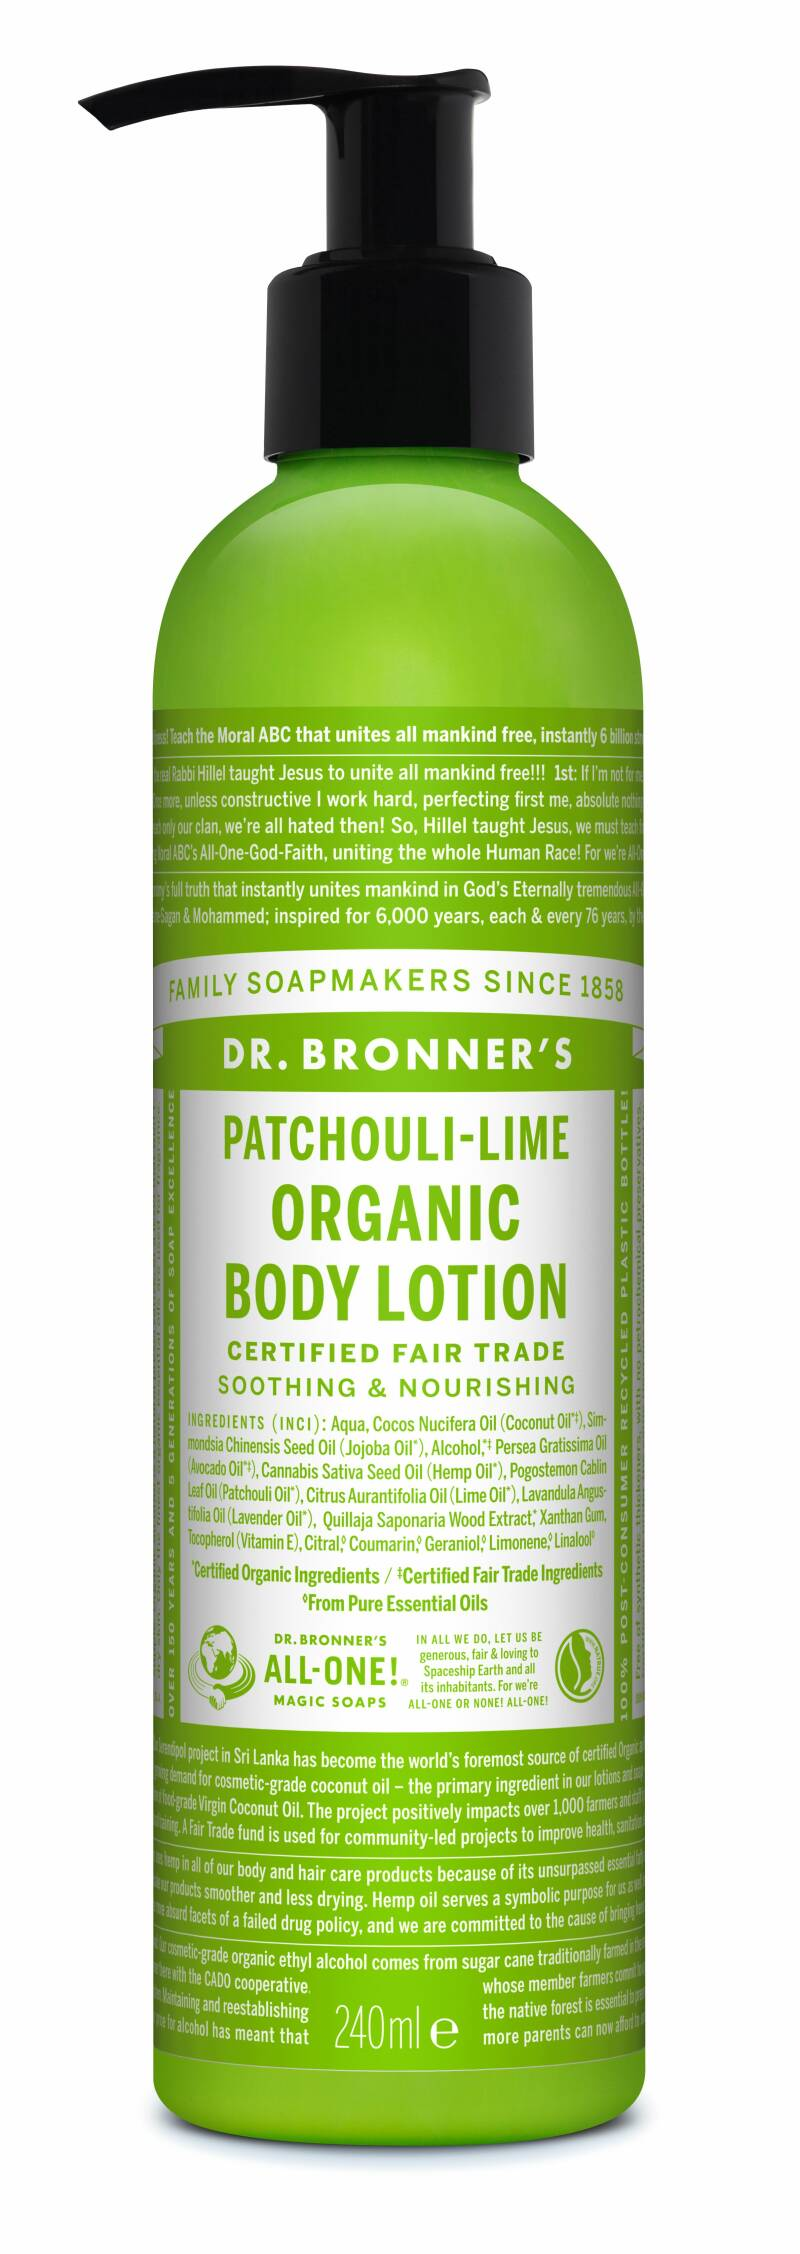 Dr Bronners Bodylotion patchouli/lime 240ml - 61101